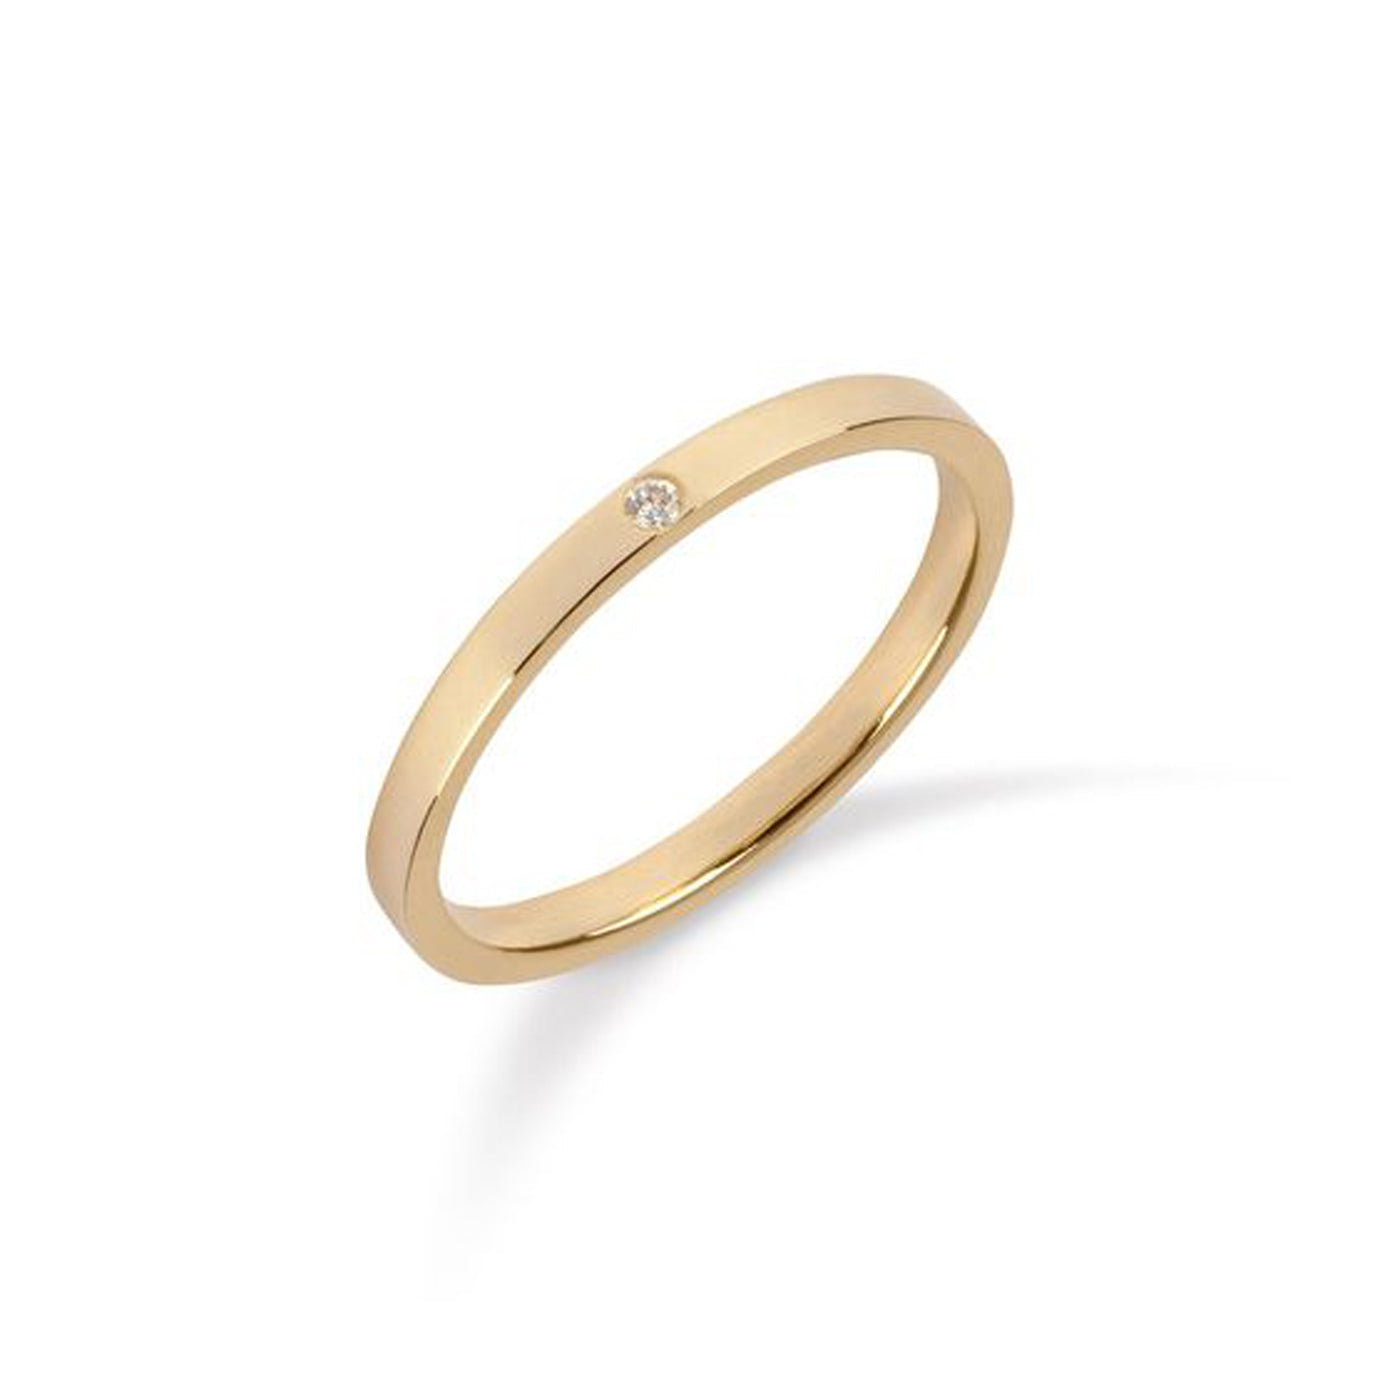 9kt Yellow Gold Single Diamond Ring - MoMuse Jewellery